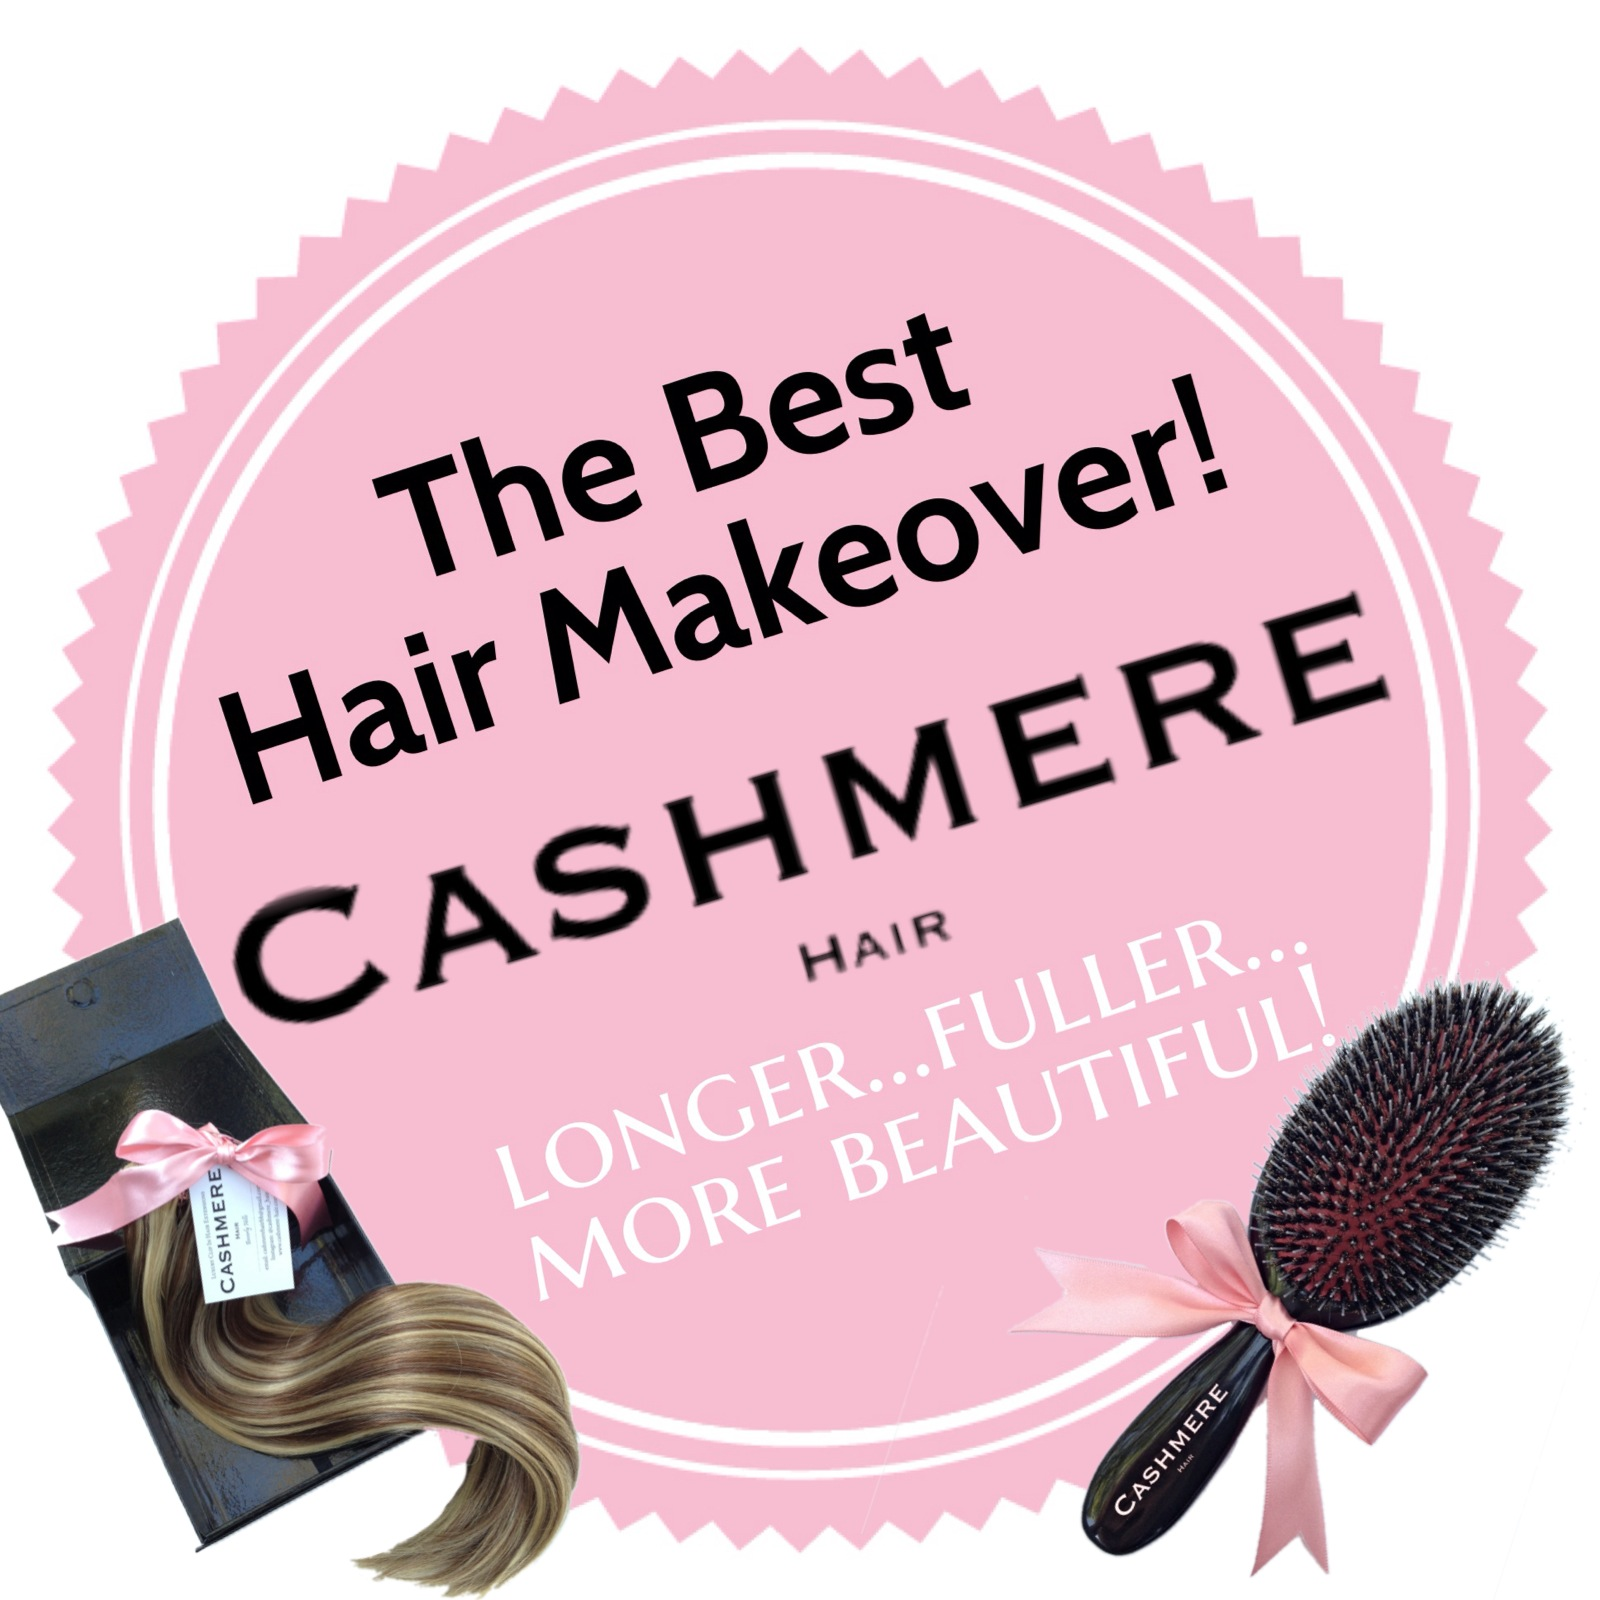 CASHMERE HAIR Style Guide: Instant Makeover!